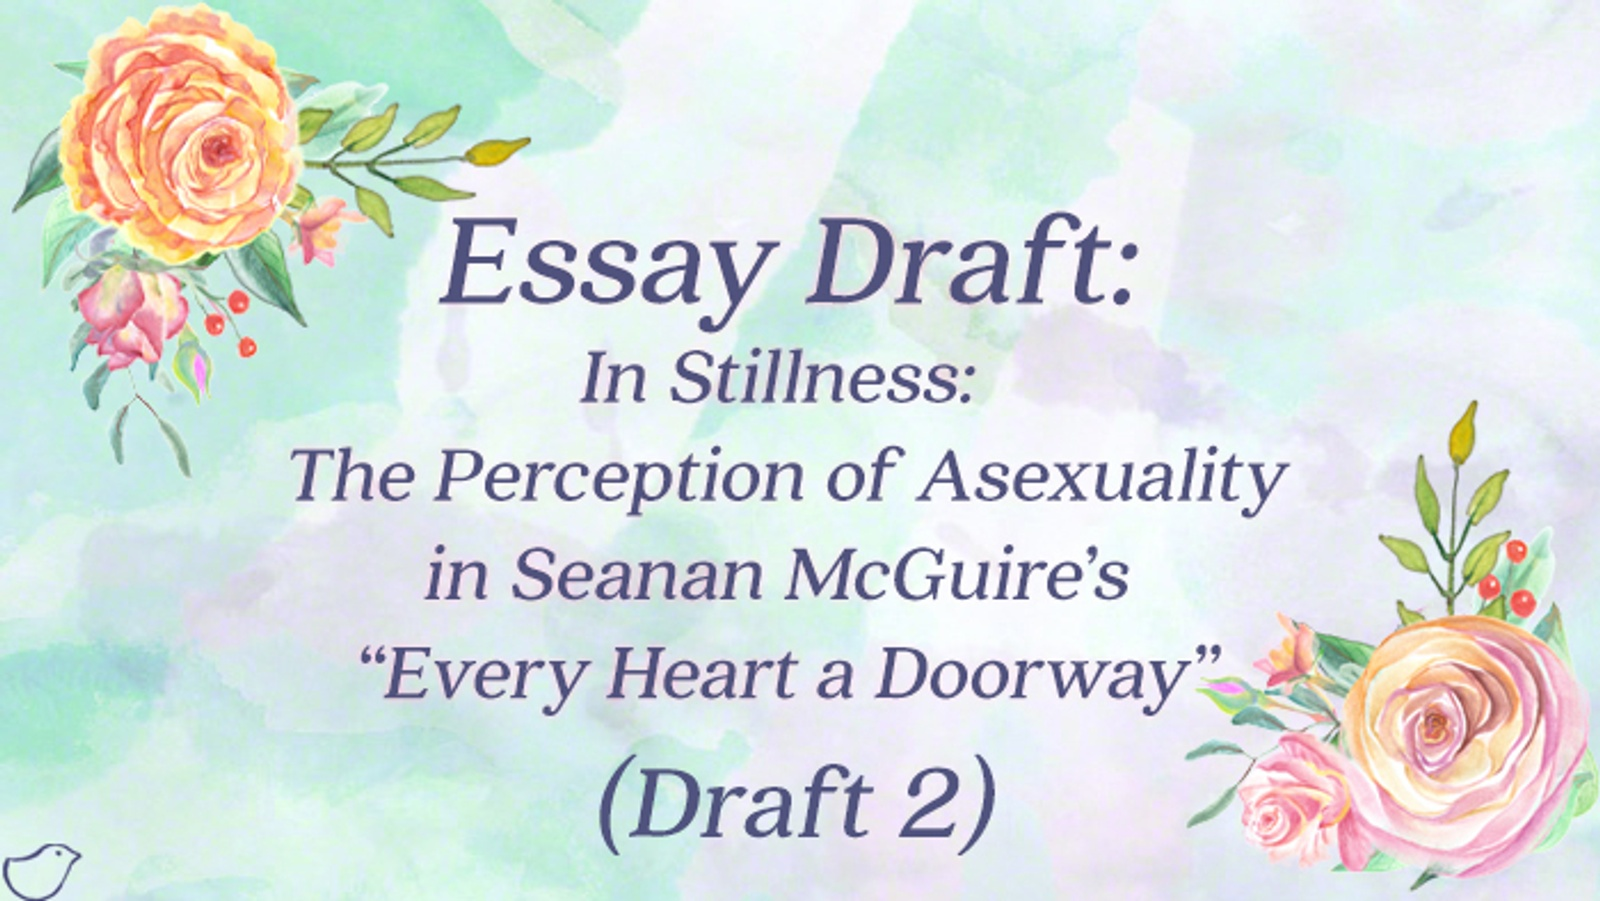 "essay draft in stillness the perception of asexuality in  essay draft 2 in stillness the perception of asexuality in seanan mcguire s ""every heart a doorway"" lynn o connacht on patreon"